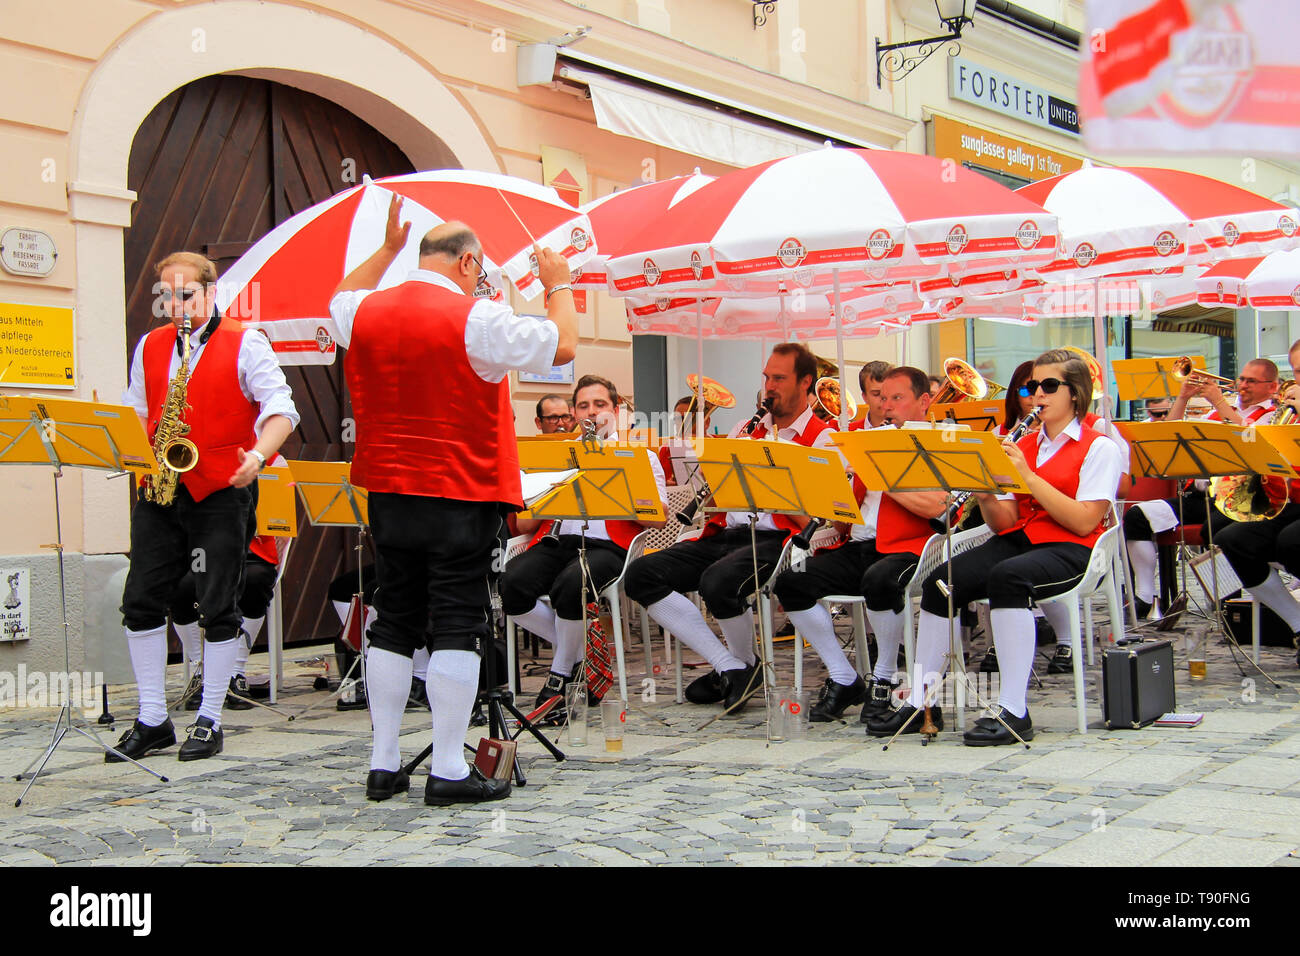 Melk, Austria, 09 07 2018. The Amateur Symphony Orchestra of Melk residents in uniform in the colors of the Austrian flag performs for tourists. - Stock Image